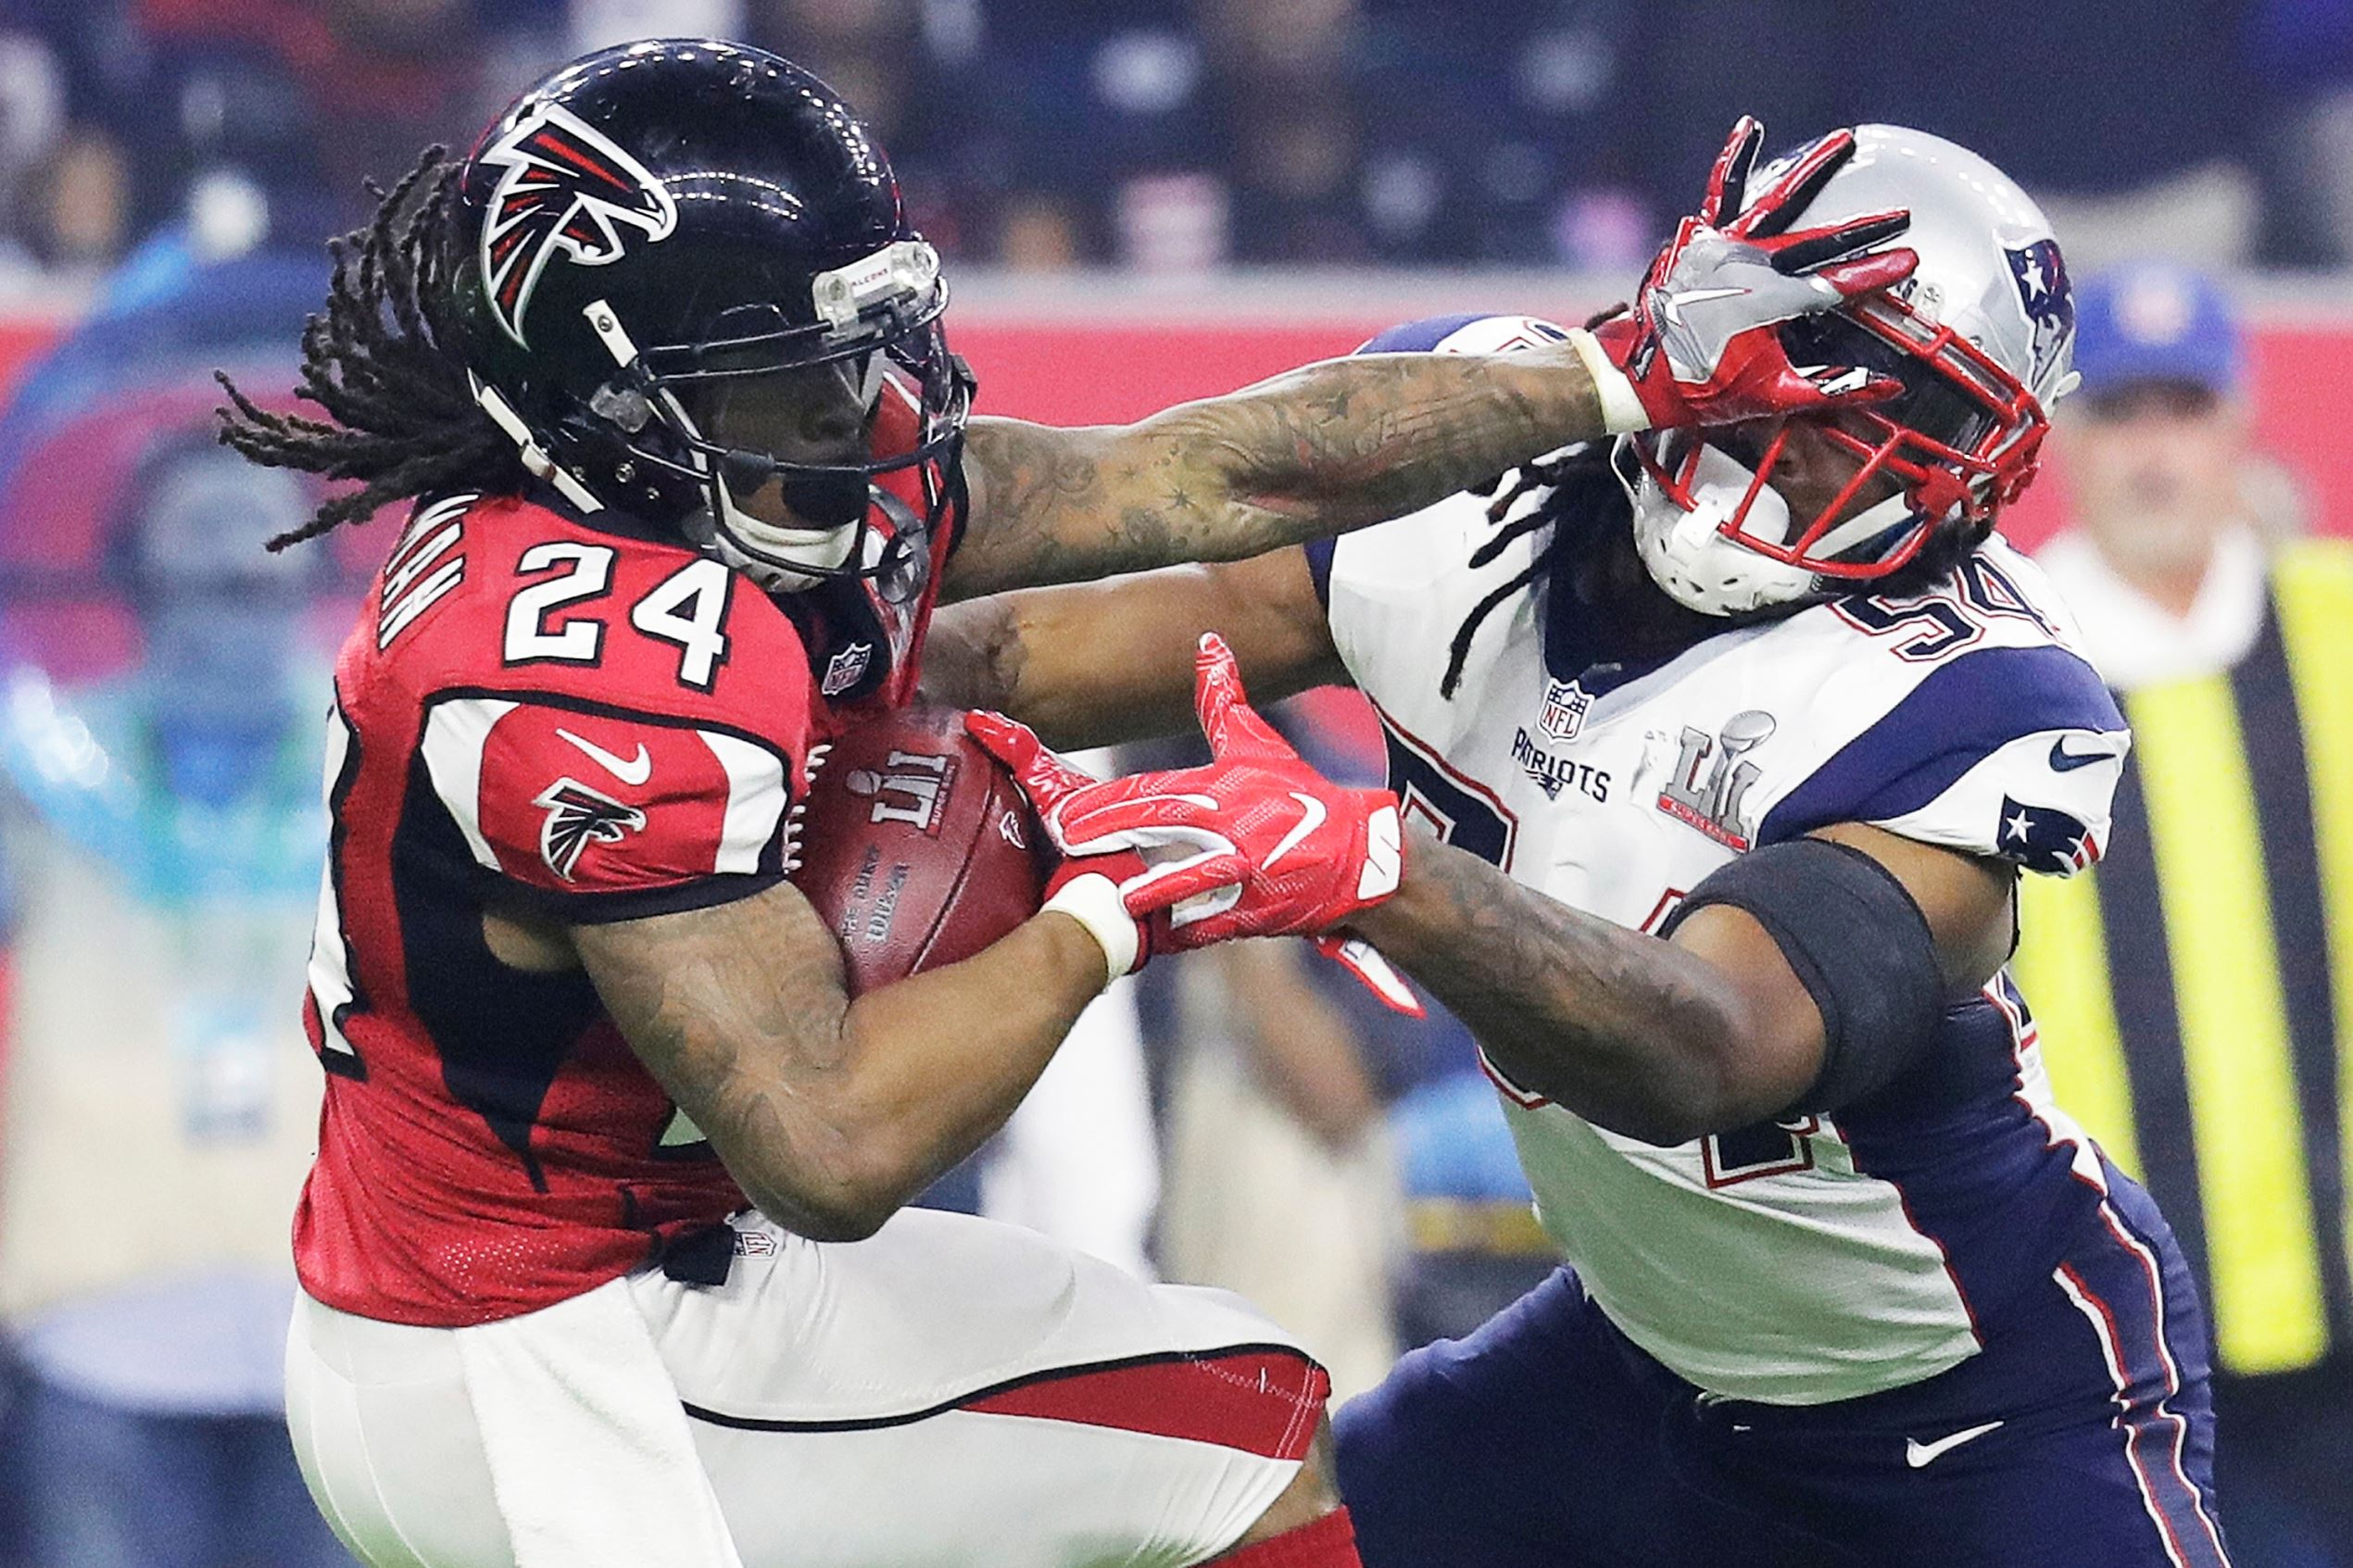 Slide 4 of 29: Atlanta Falcons' Devonta Freeman runs against New England Patriots' Dont'a Hightower during the second half of the NFL Super Bowl 51 football game, on Feb. 5, in Houston.